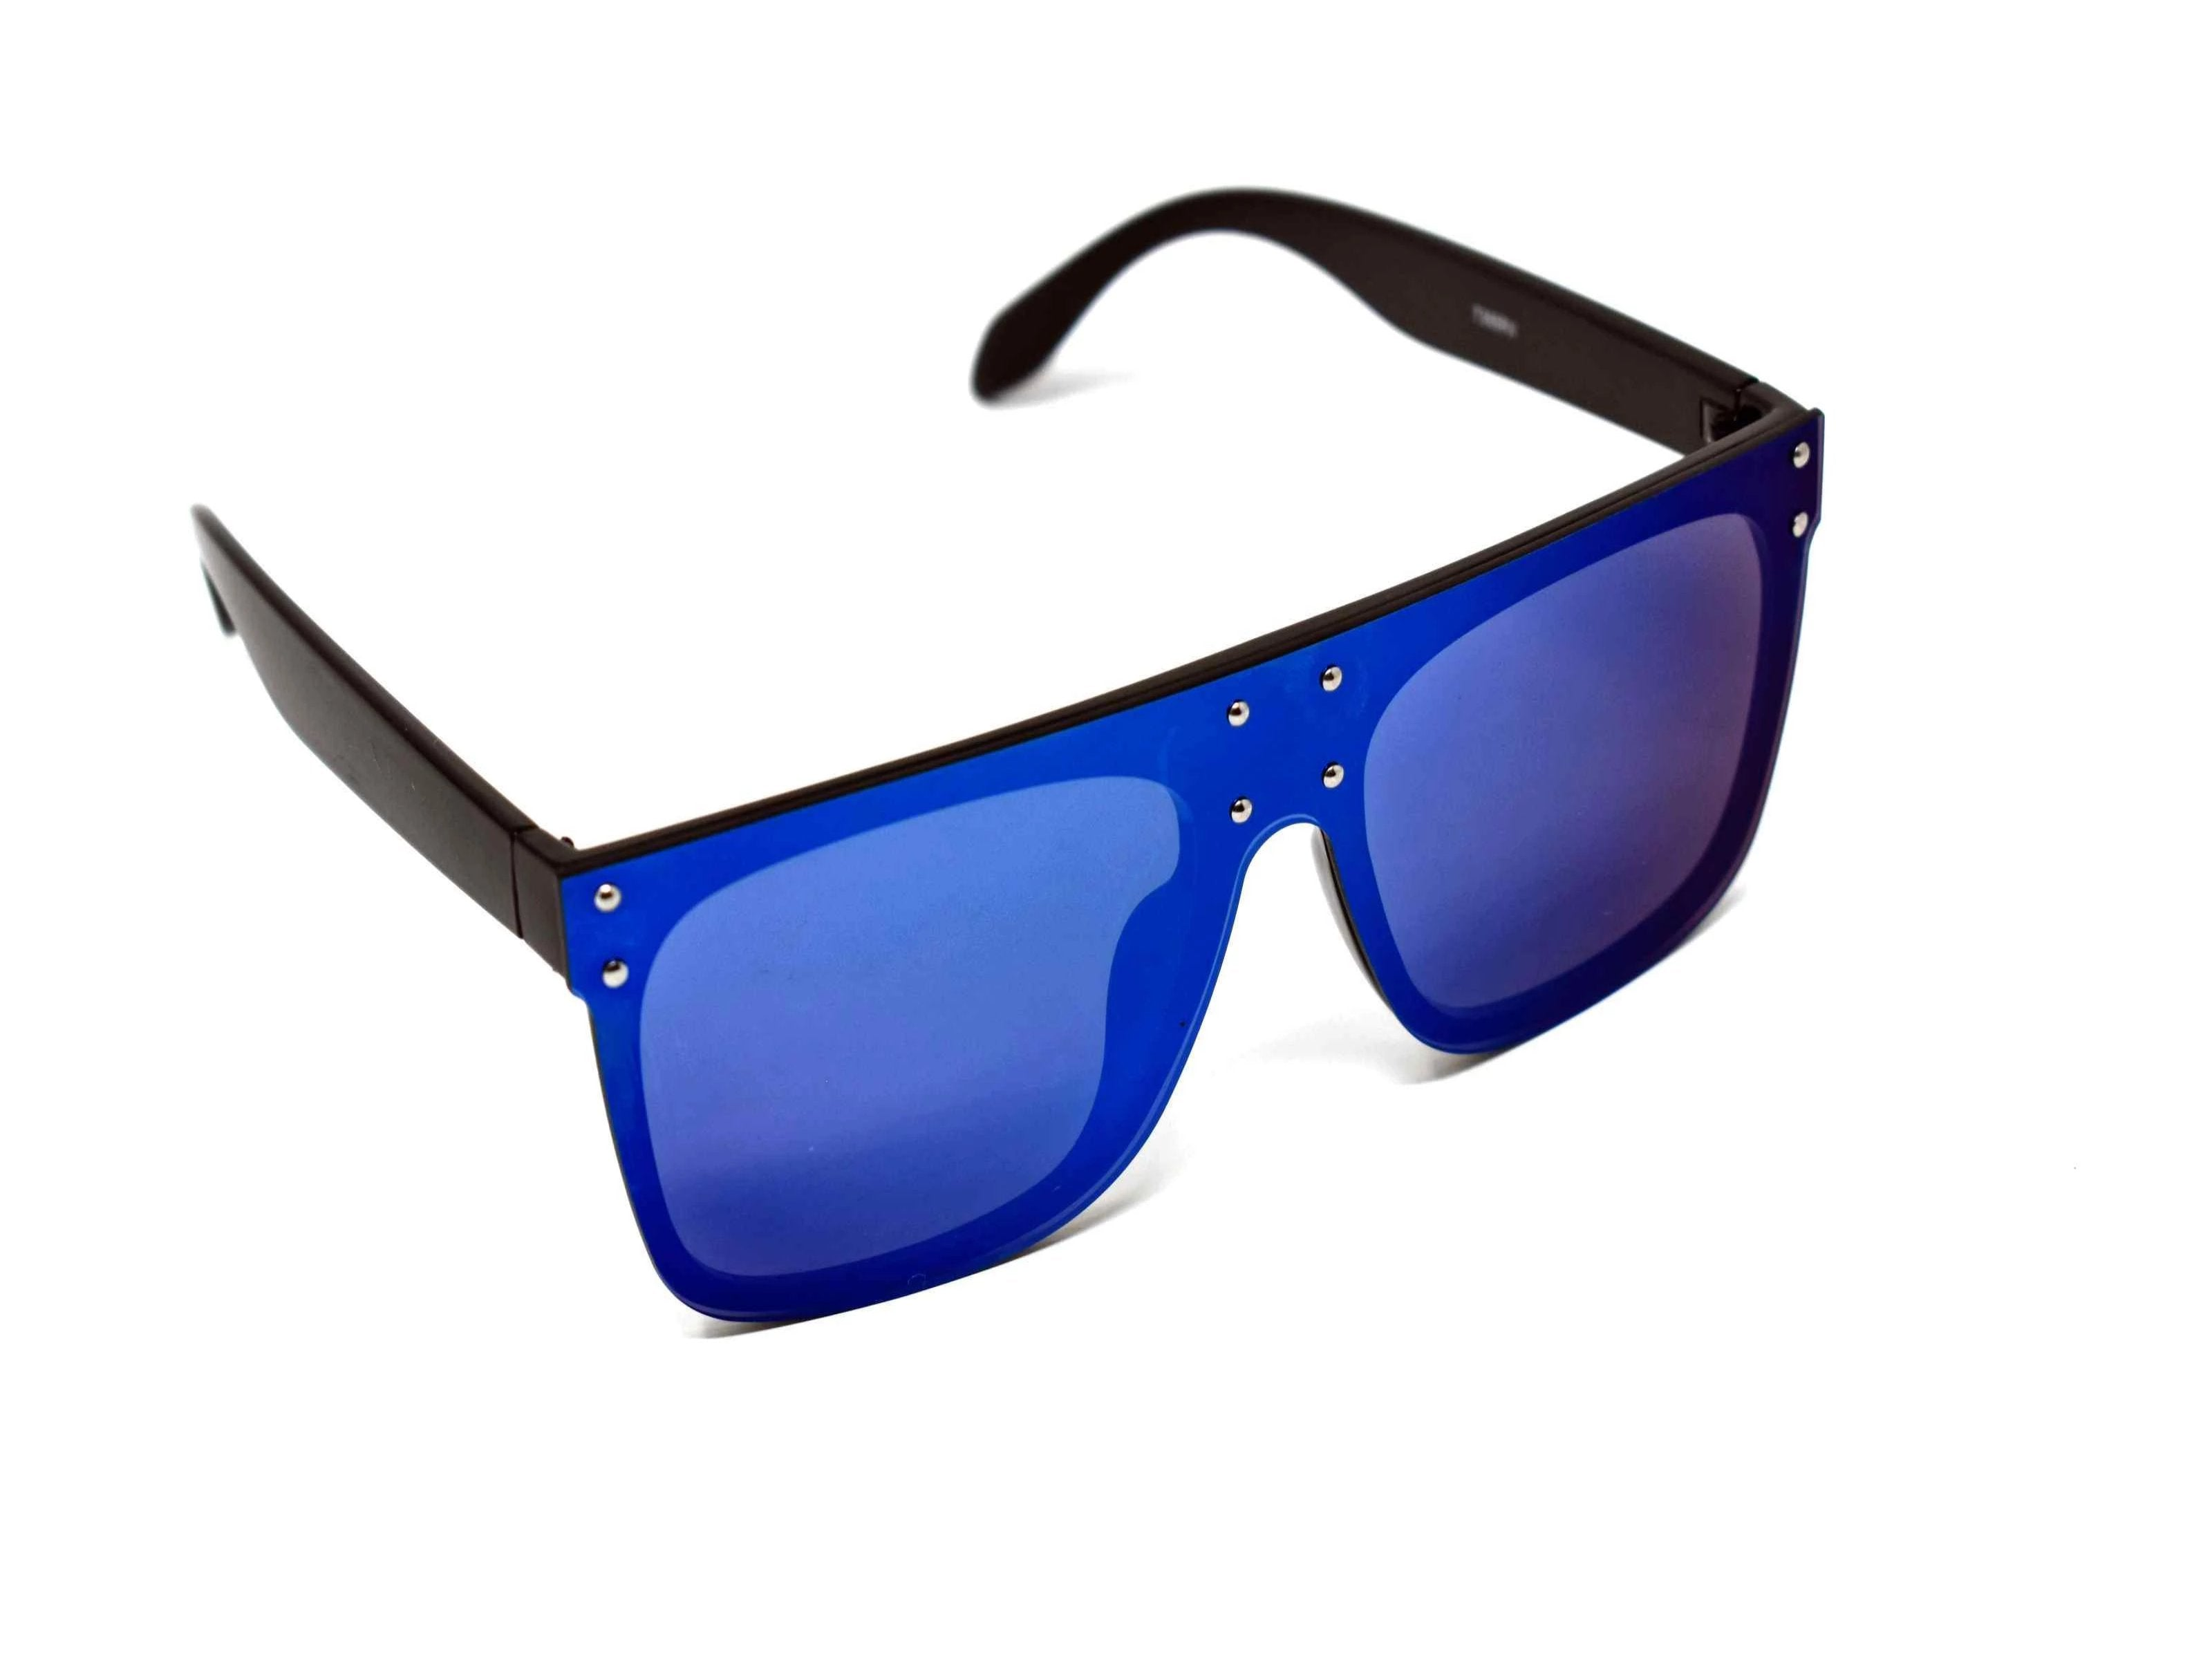 Fashion forward and edgy is what you call our shield shaped Rosa Black framed blue mirrored lens Sunglasses.